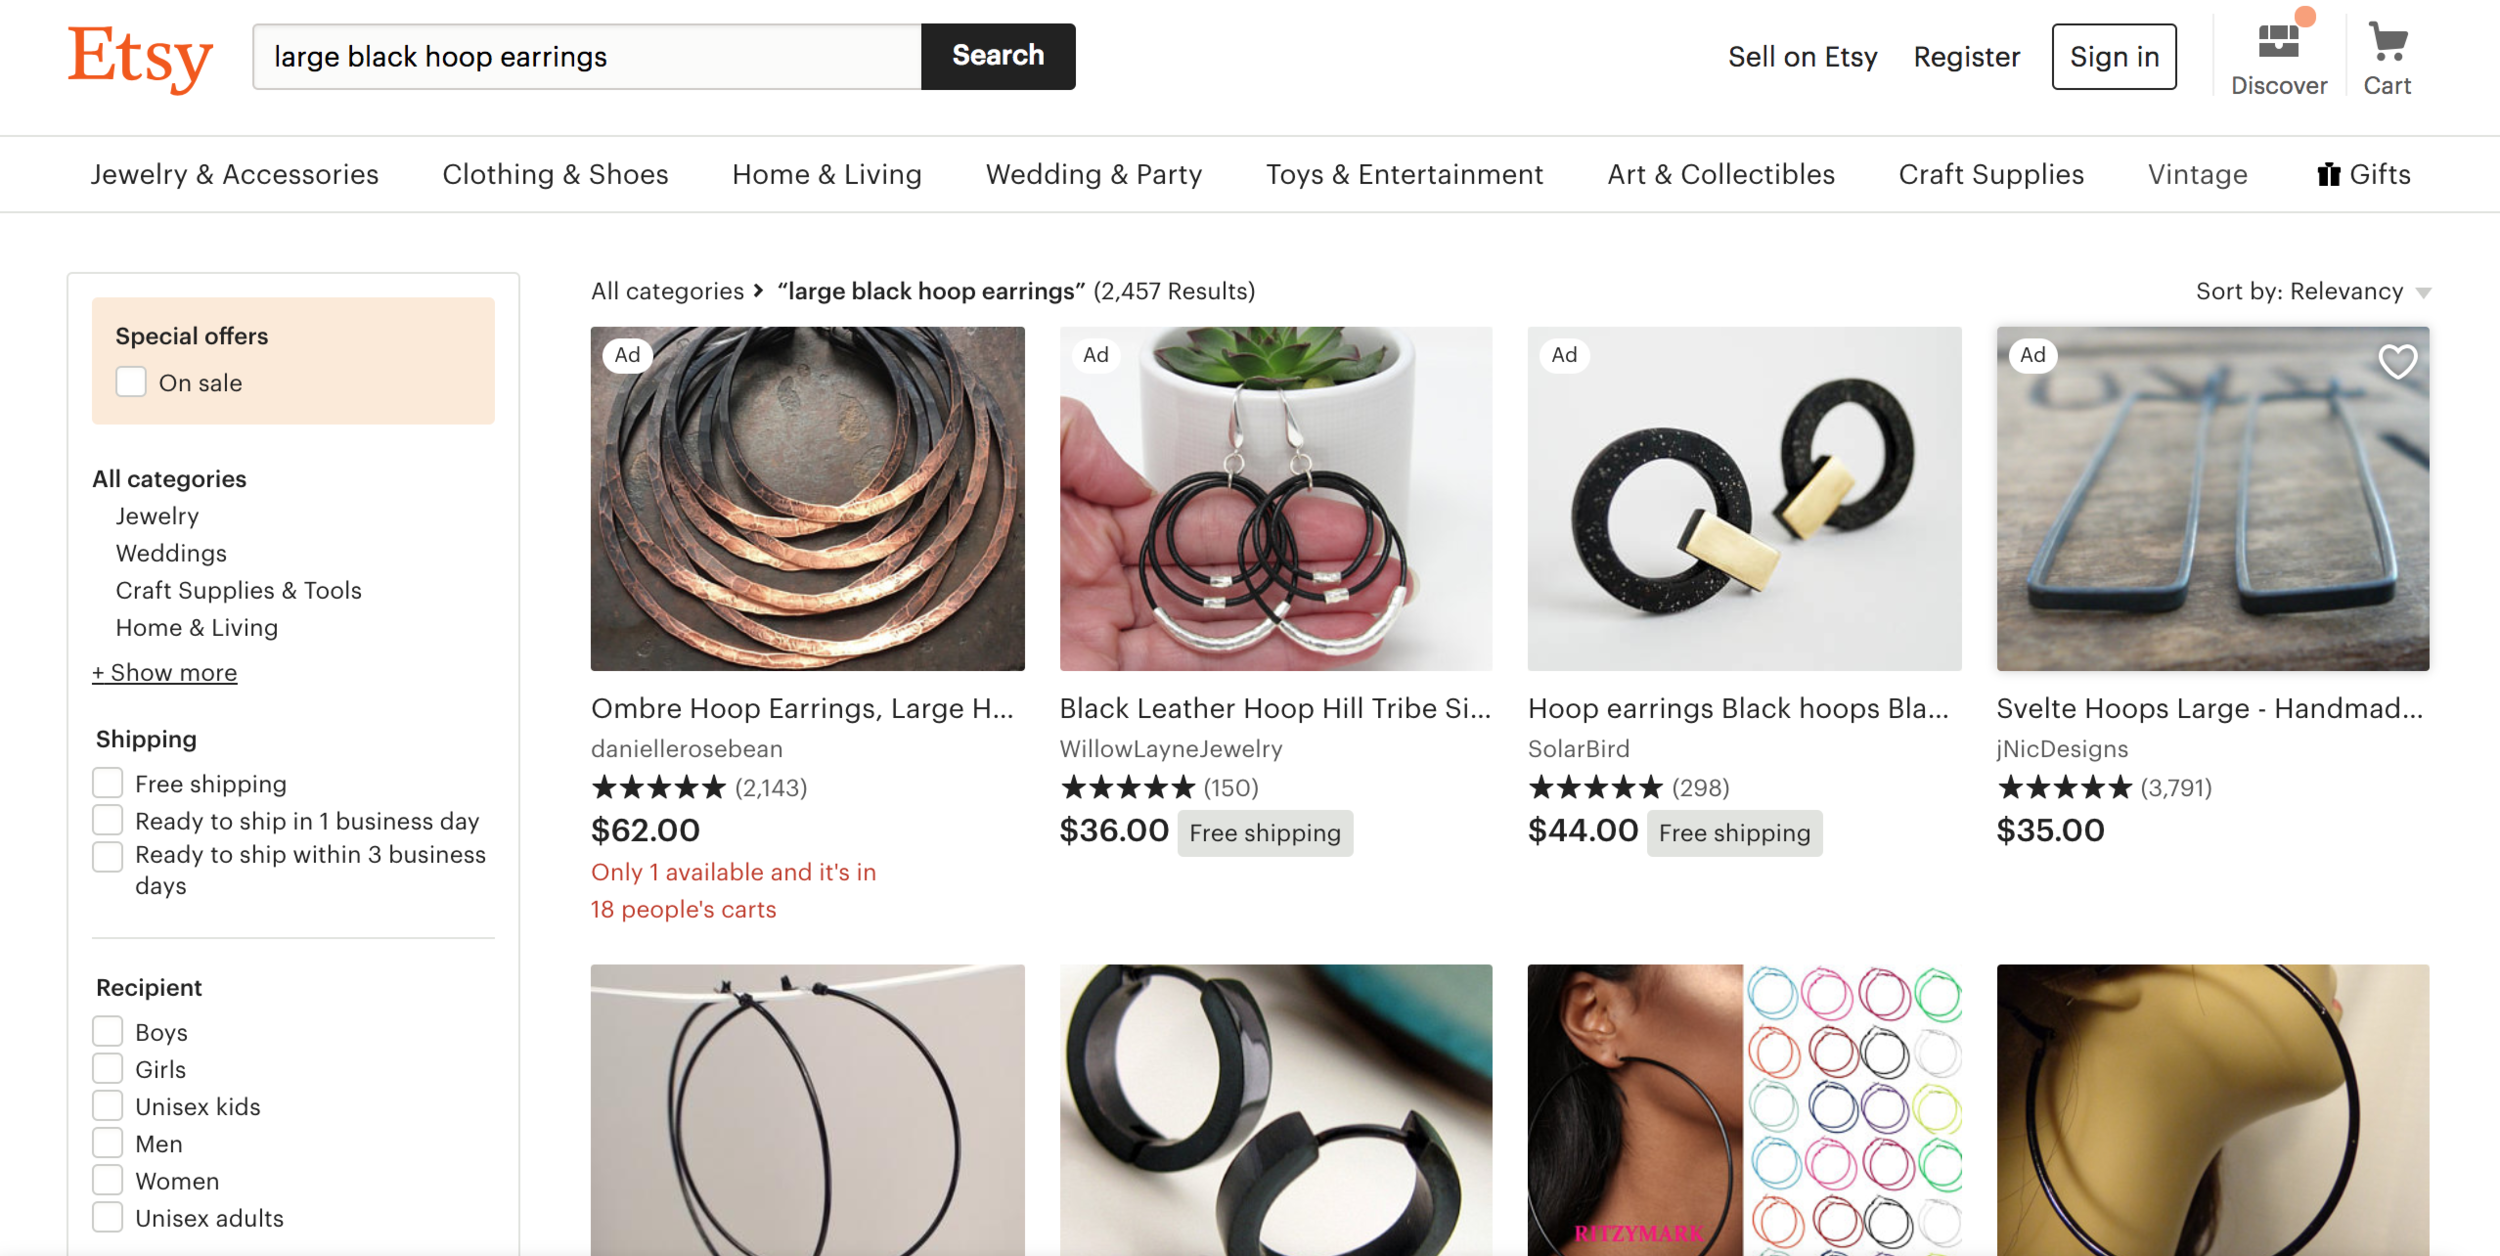 etsy black hoop earrings search results